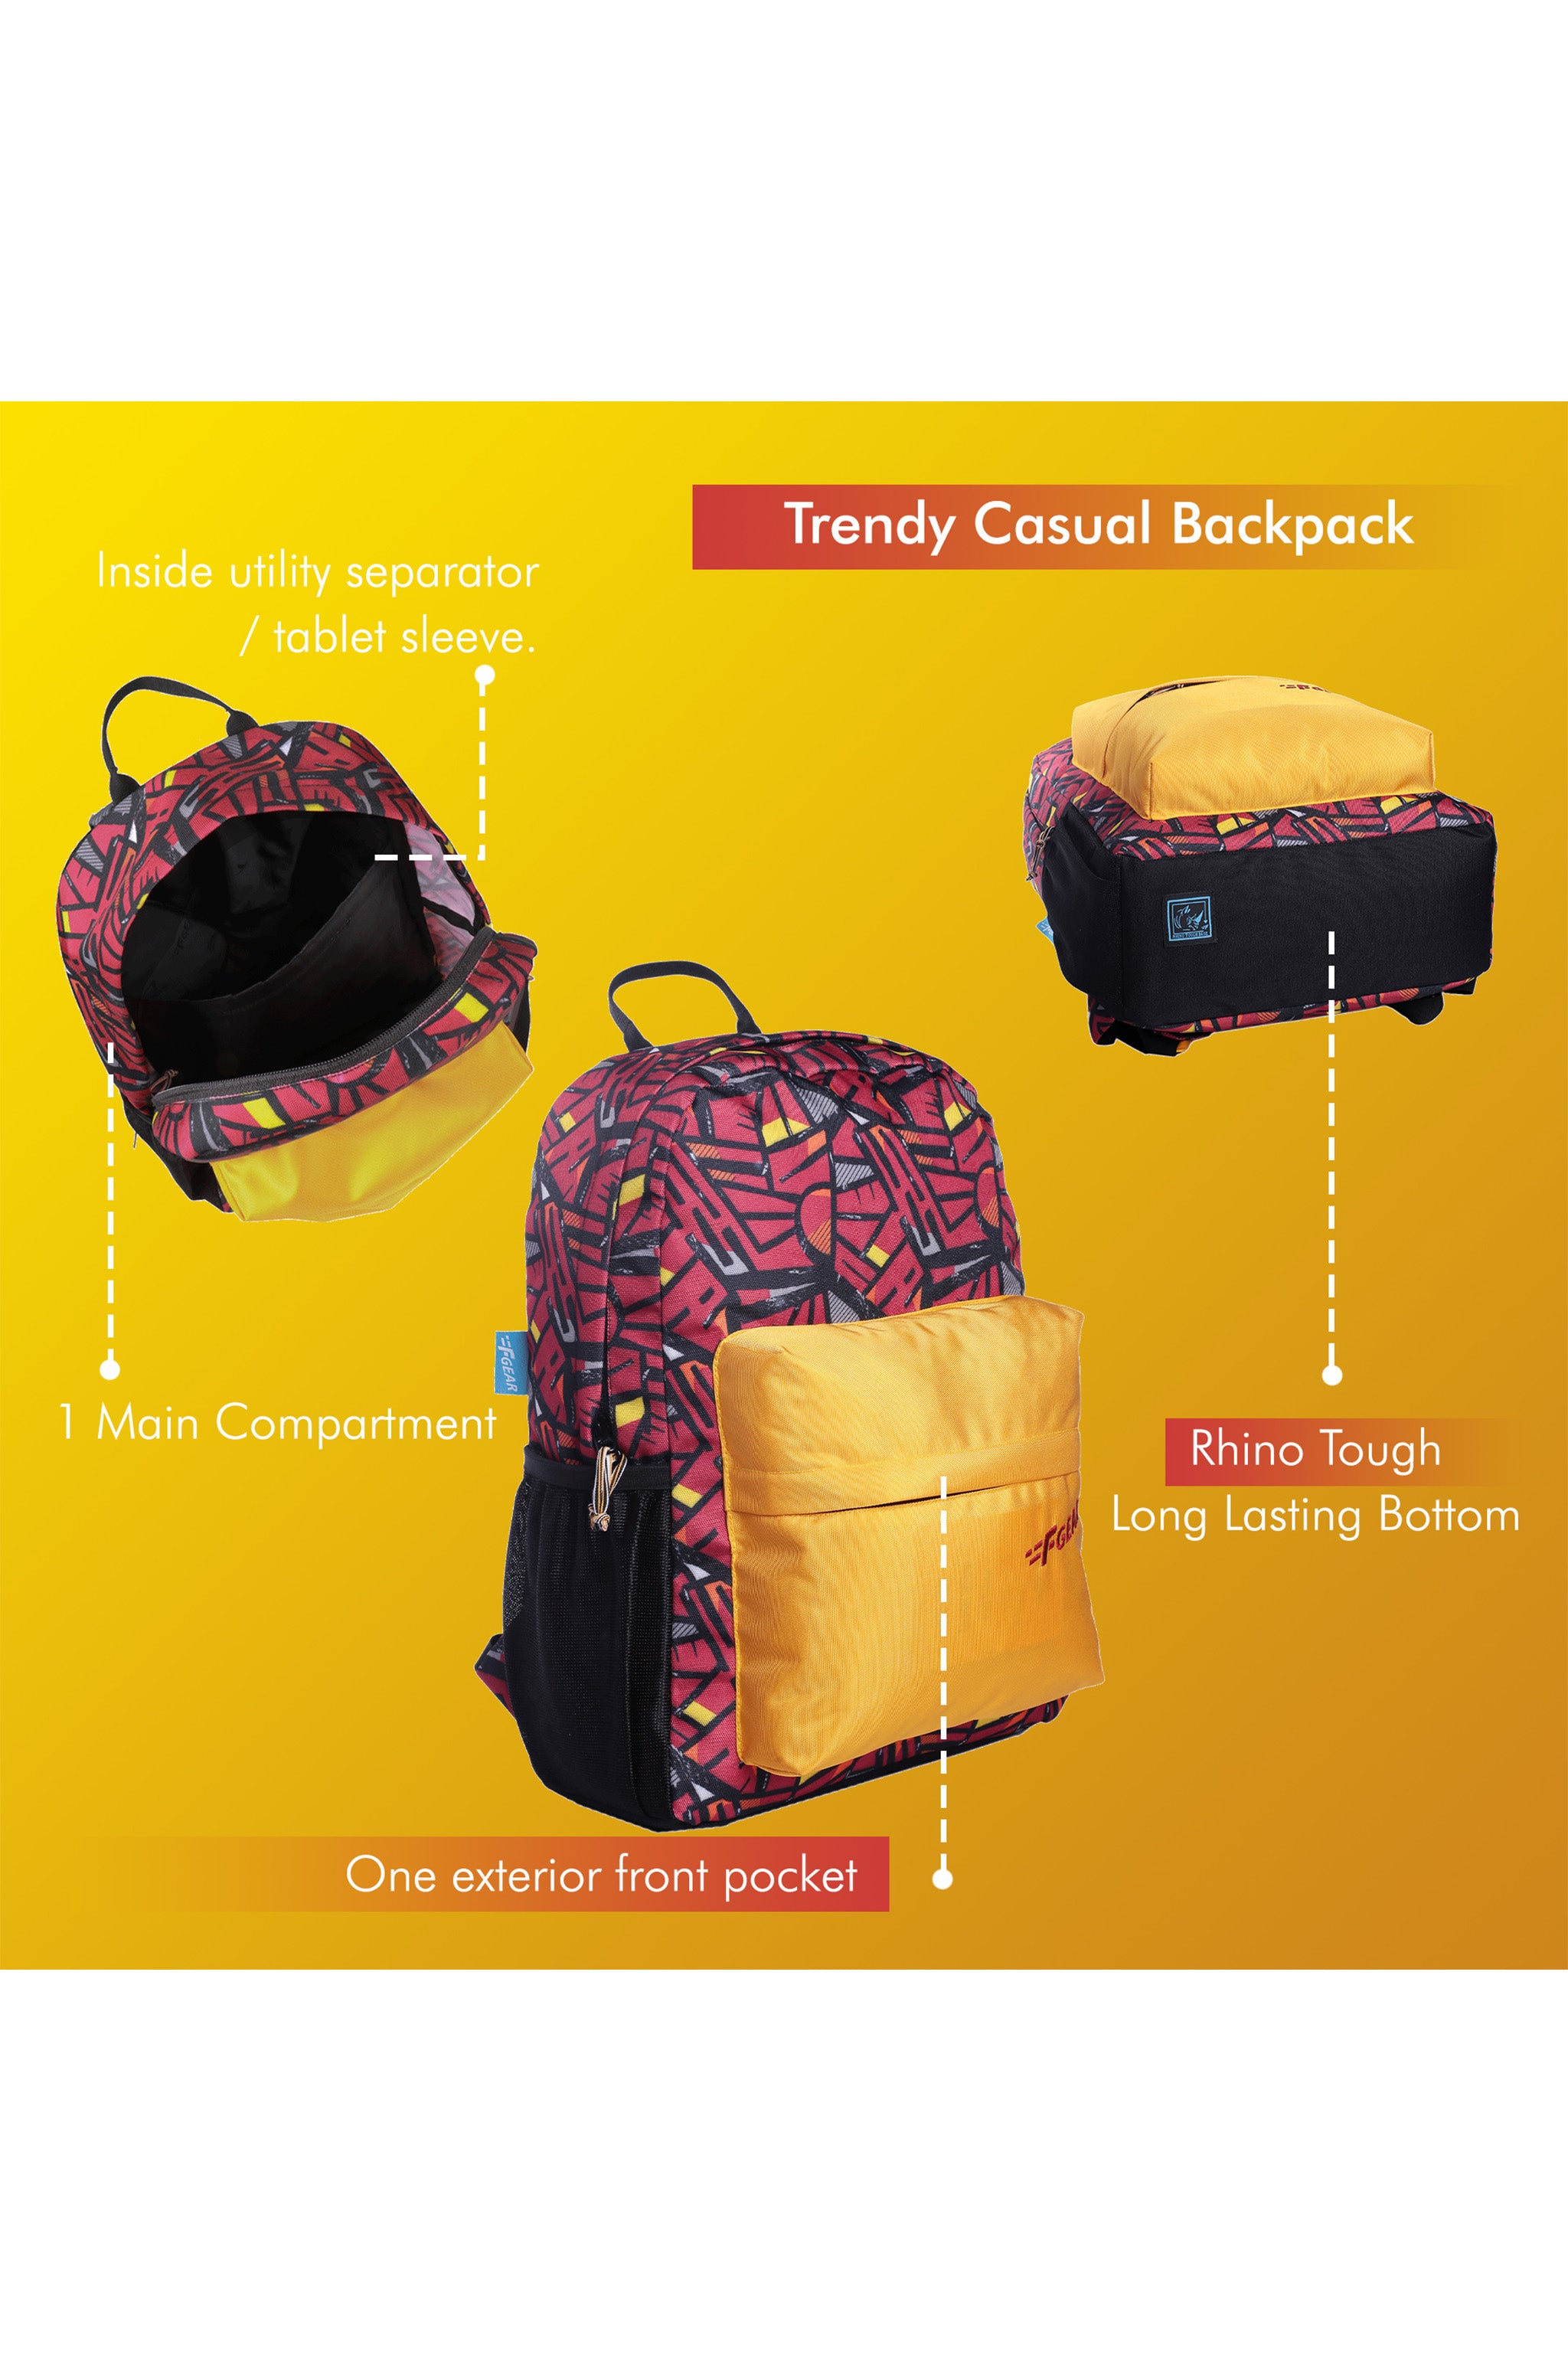 F Gear 23 Ltrs Emprise Wordly Red, Yellow Casual Backpack (3367)